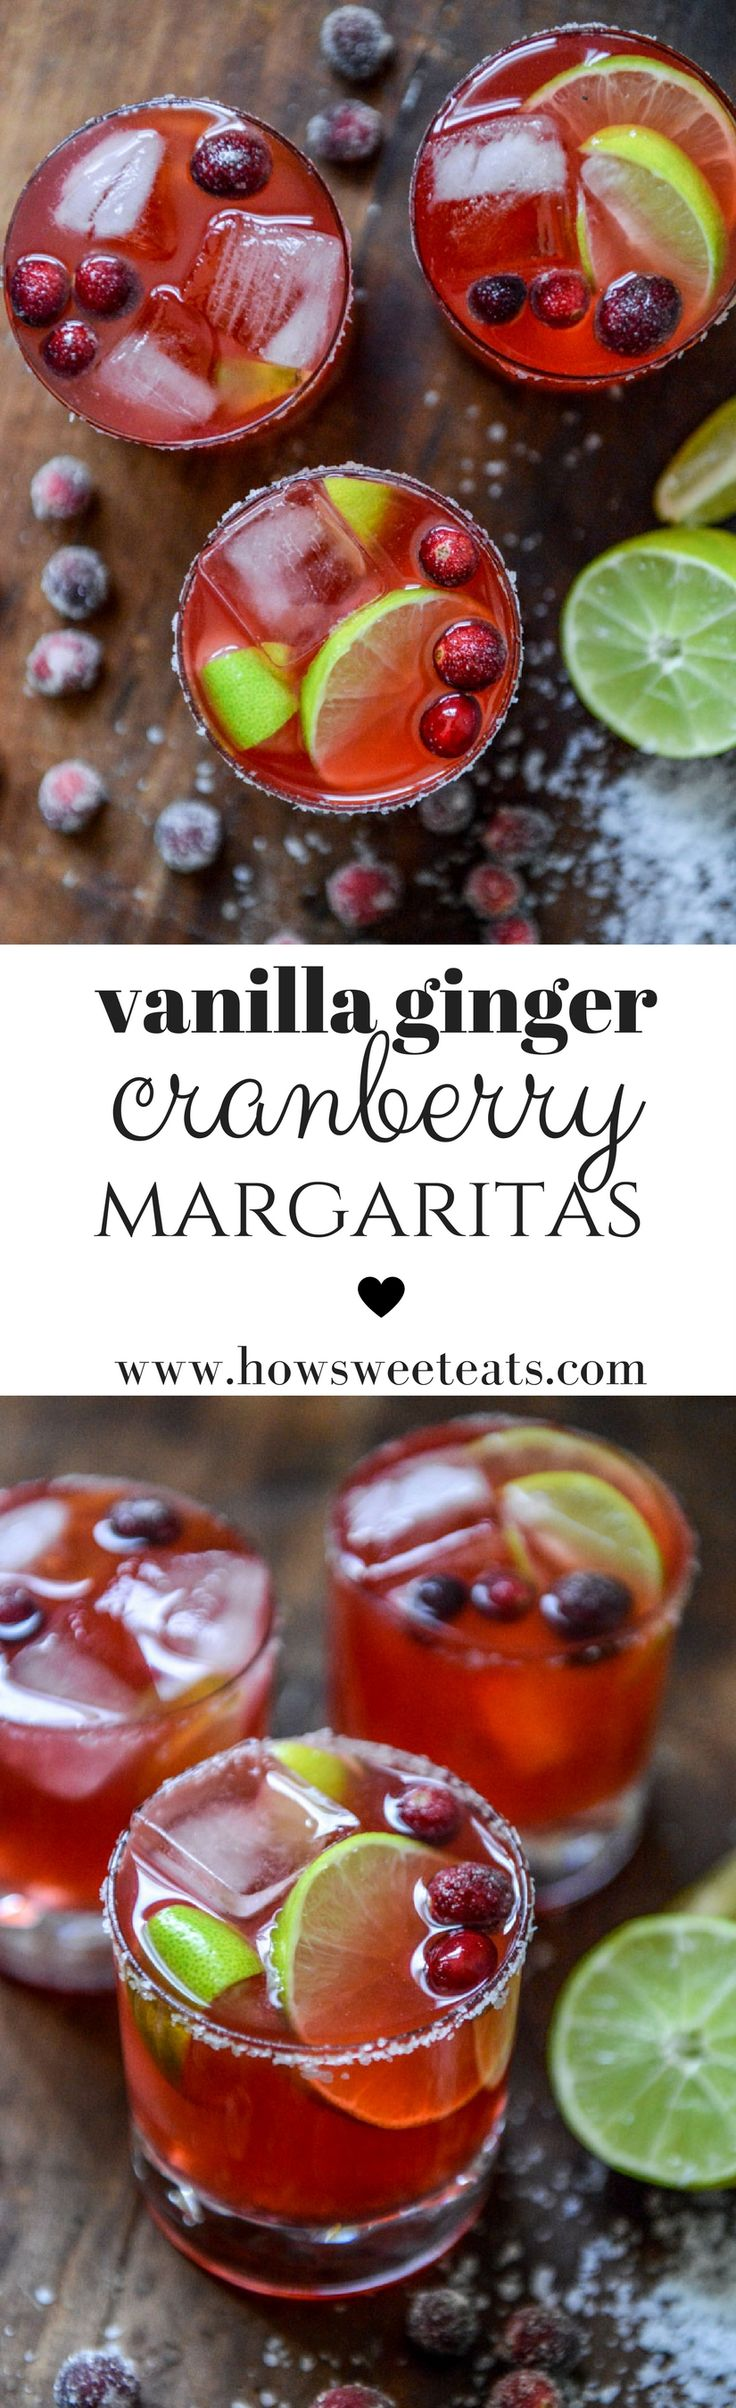 Cranberry Vanilla Ginger Margaritas with Sugared Cranberries I howsweeteats.com @howsweeteats